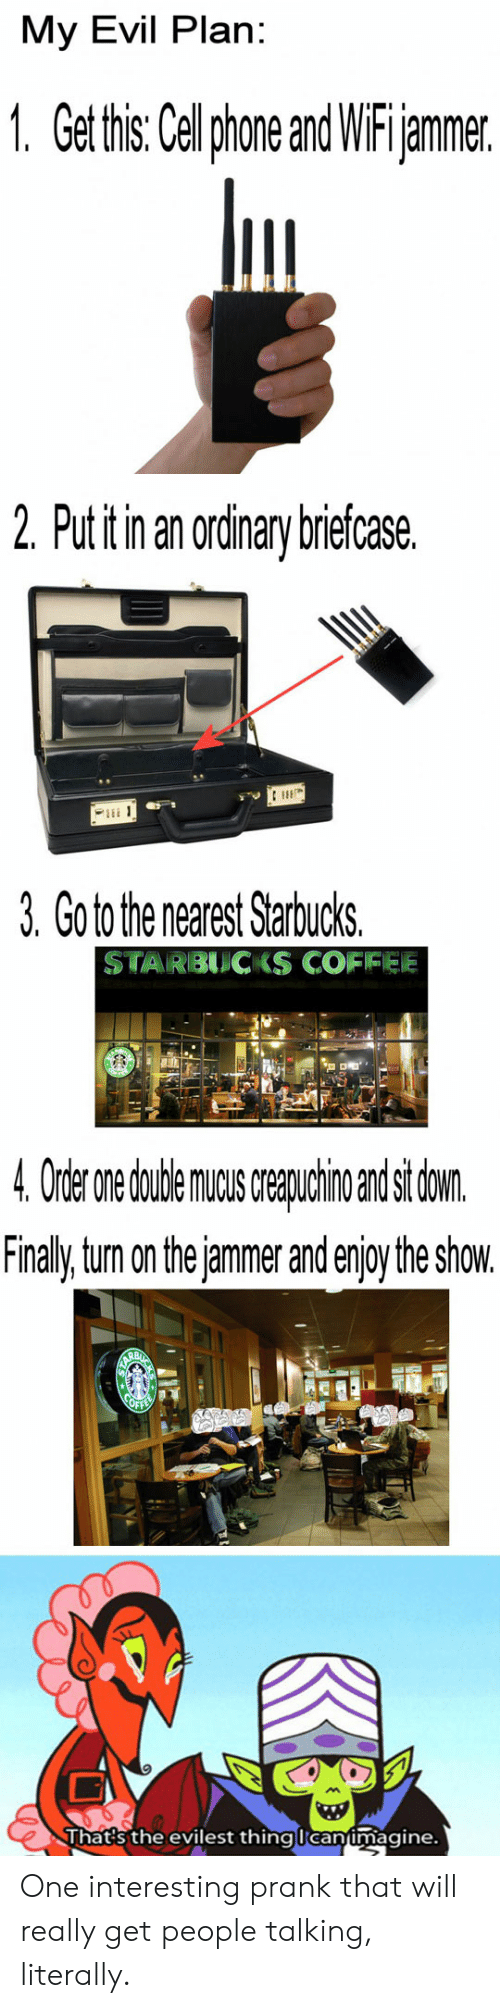 Prank: My Evil Plan:  1. Get this: Celphone and WiFijammer.  2. Put itin an ordinary briefcase.  3. Go to the nearest Starbucks.  STARBUCKS COFIFEE  4 Order nedudeaindsi don  Finaly tum on the jammer and enjoy the show.  Thats the evilest thinglcanimagine. One interesting prank that will really get people talking, literally.